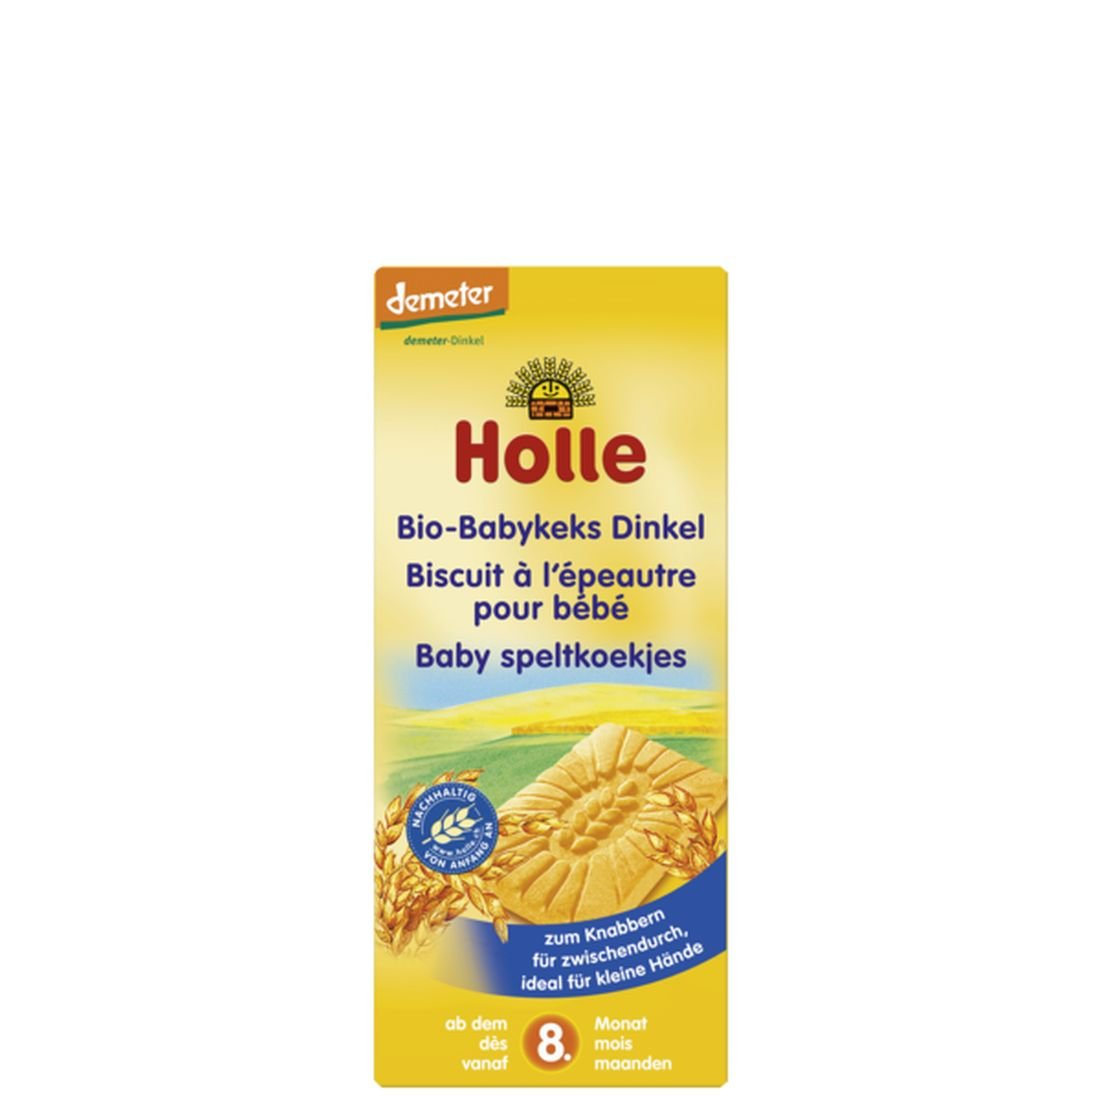 Holle Organic Snacks - Spelt Baby Biscuits - Single Pack, 150g 335823